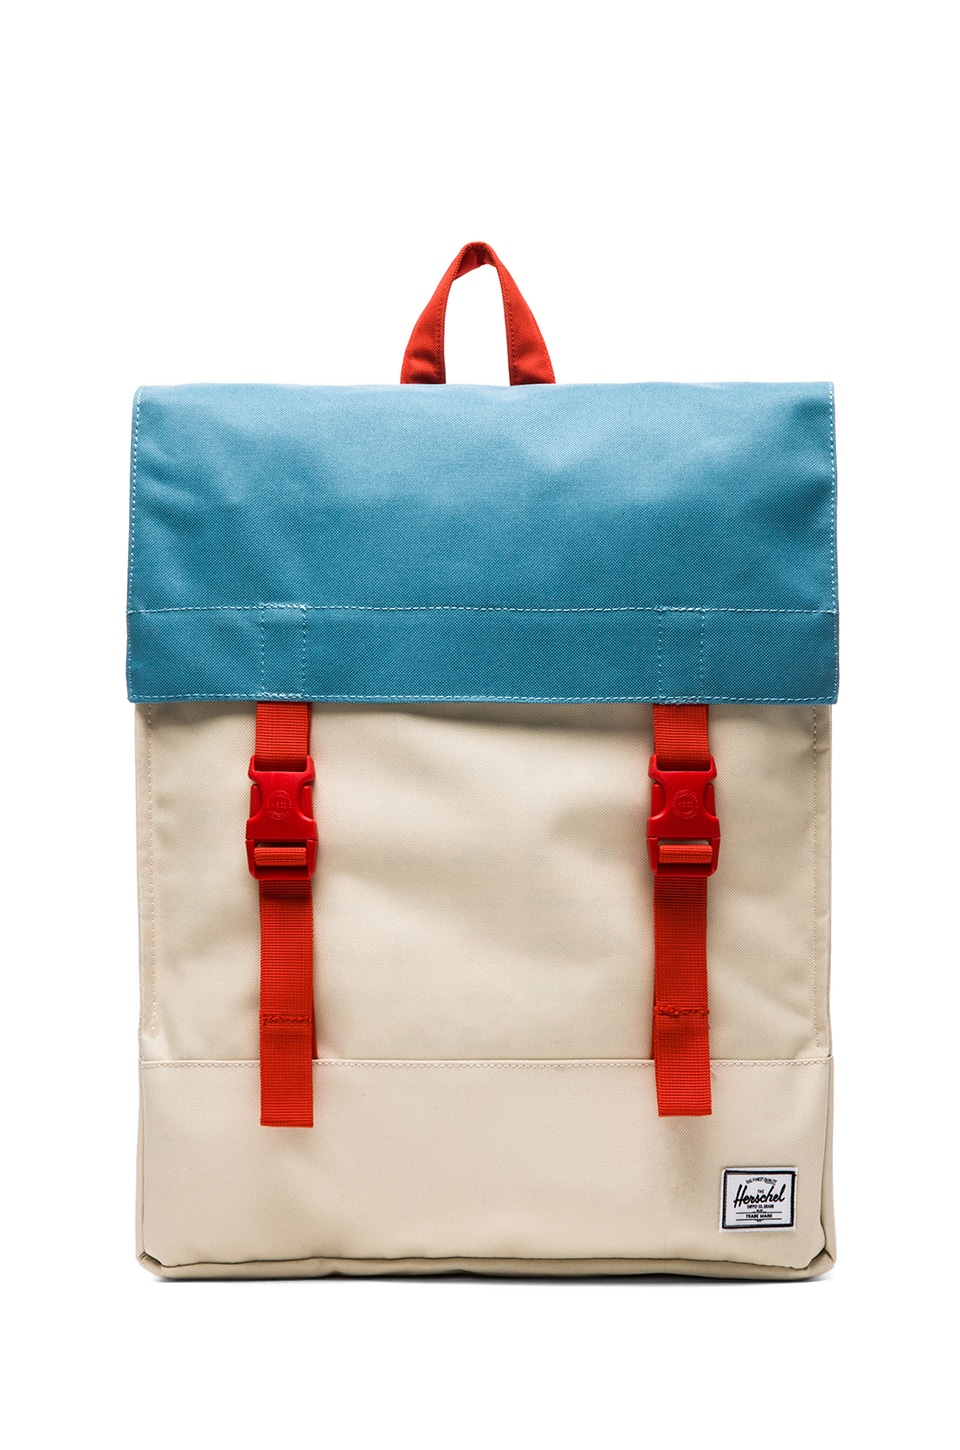 Herschel Supply Co. Rad Cars Collection Survey Backpack in Bone & Punch Bug Blue & Synchro Red